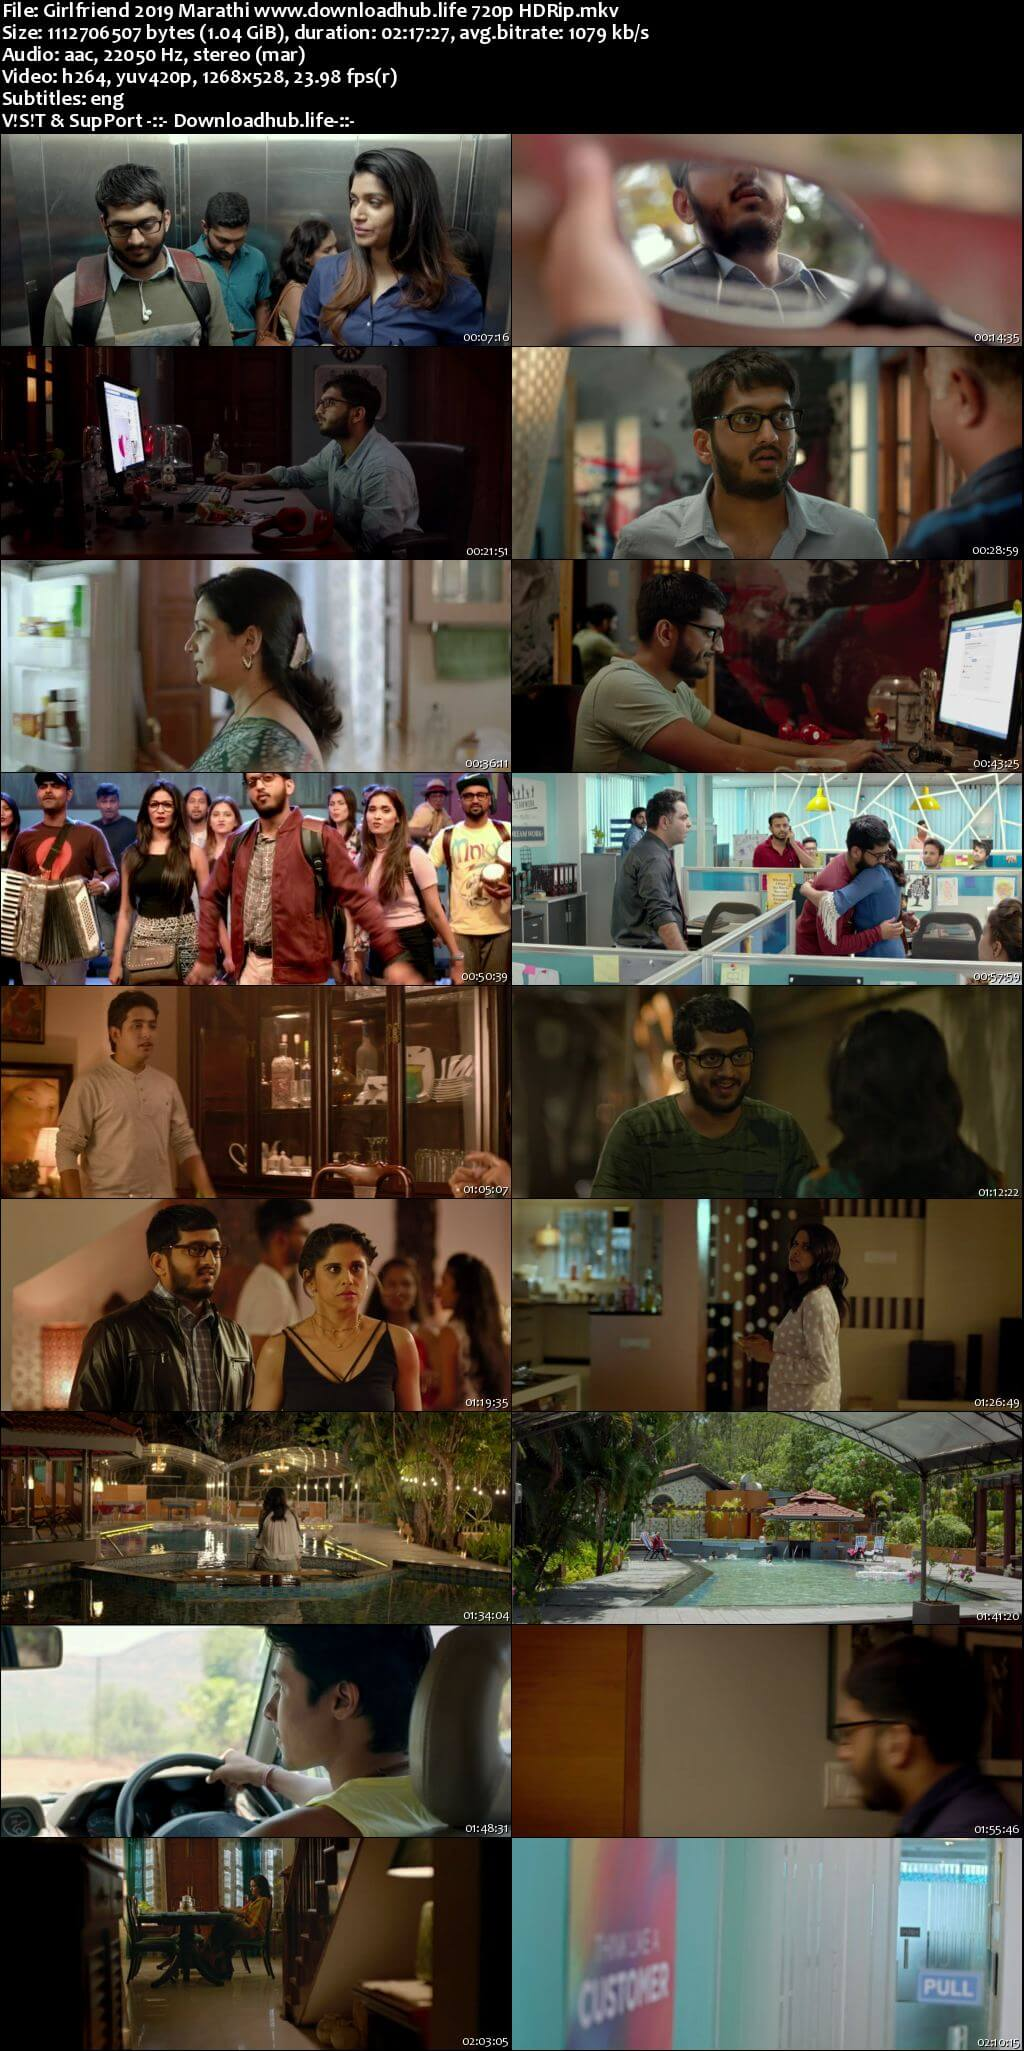 Girlfriend 2019 Marathi 720p HDRip ESubs